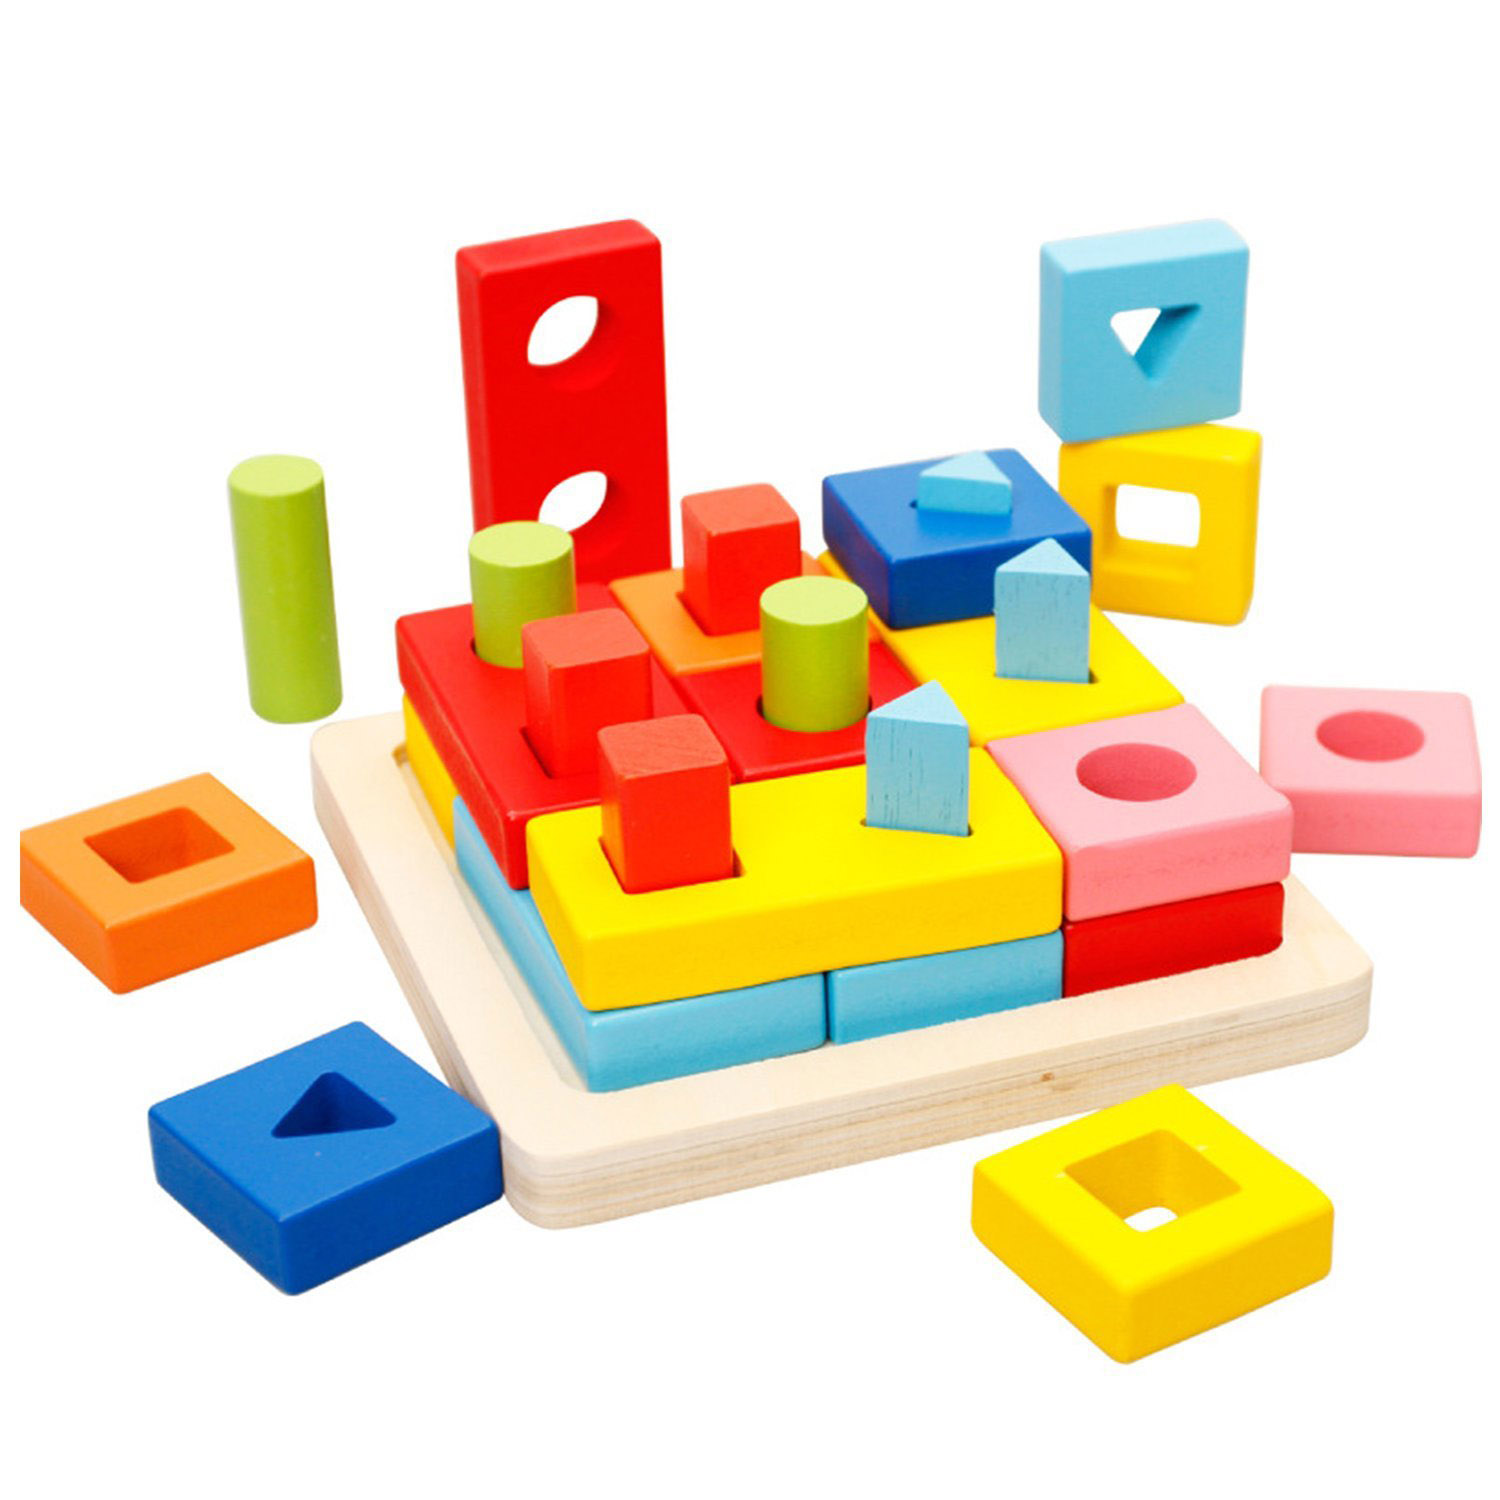 Puzzle Games Toys Wooden Geometric Stacking Sort Toys Early Educational Shape Chunky Puzzle Games for Kid Early Learning  Puzzls